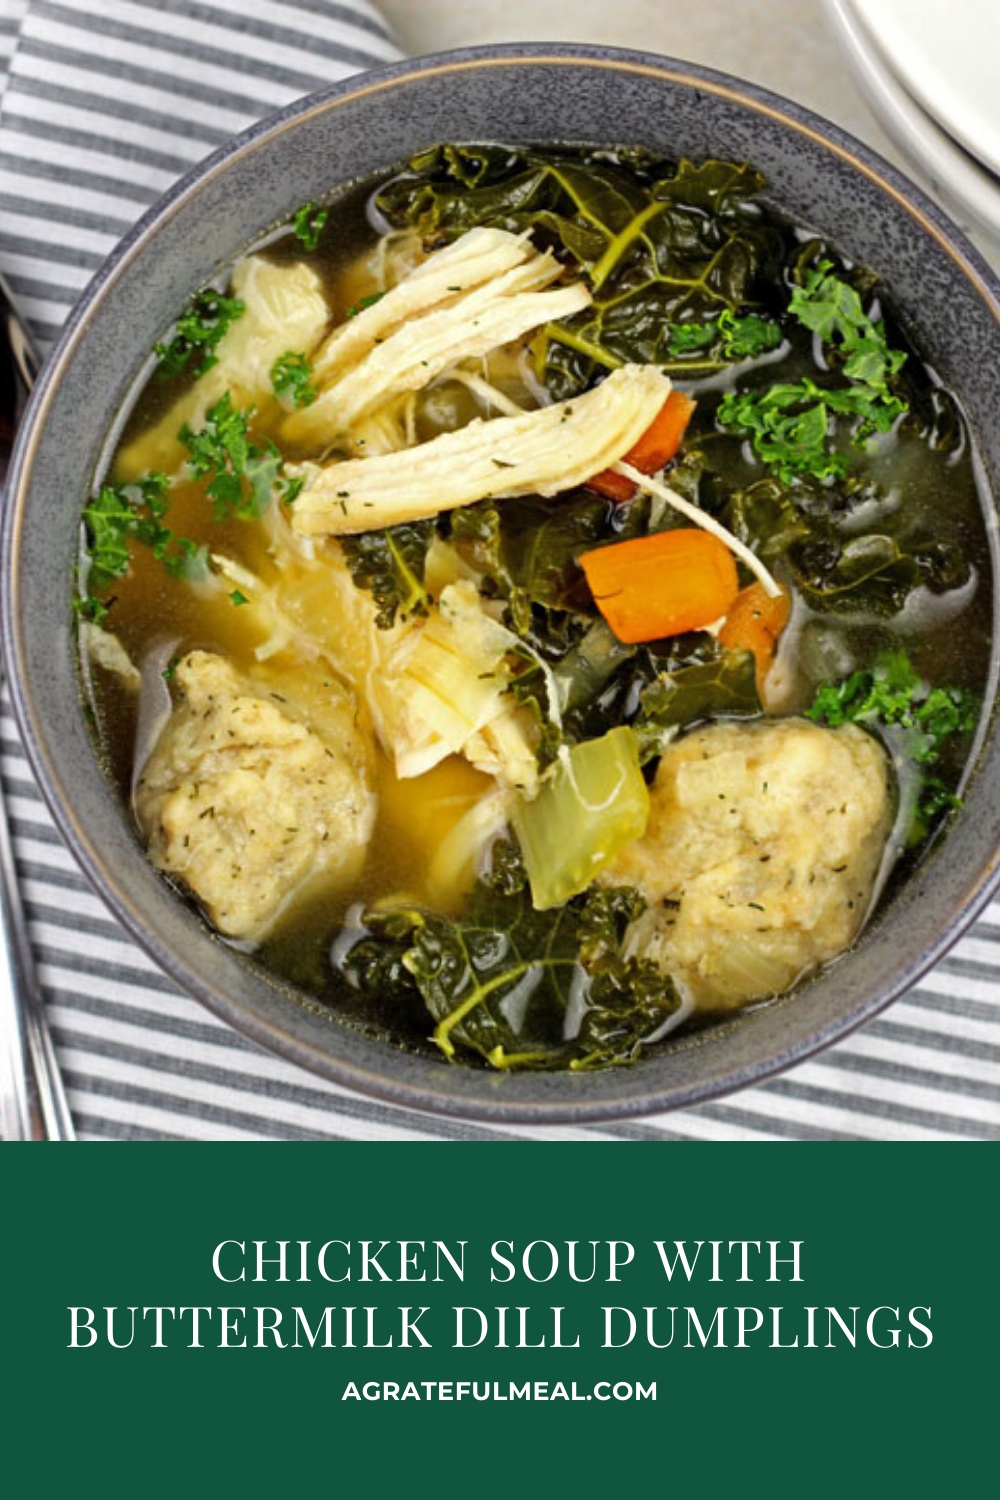 Chicken Soup With Buttermilk Dill Dumplings A Grateful Meal Recipe In 2020 Recipes For Soups And Stews Main Dish Recipes Stew Recipes